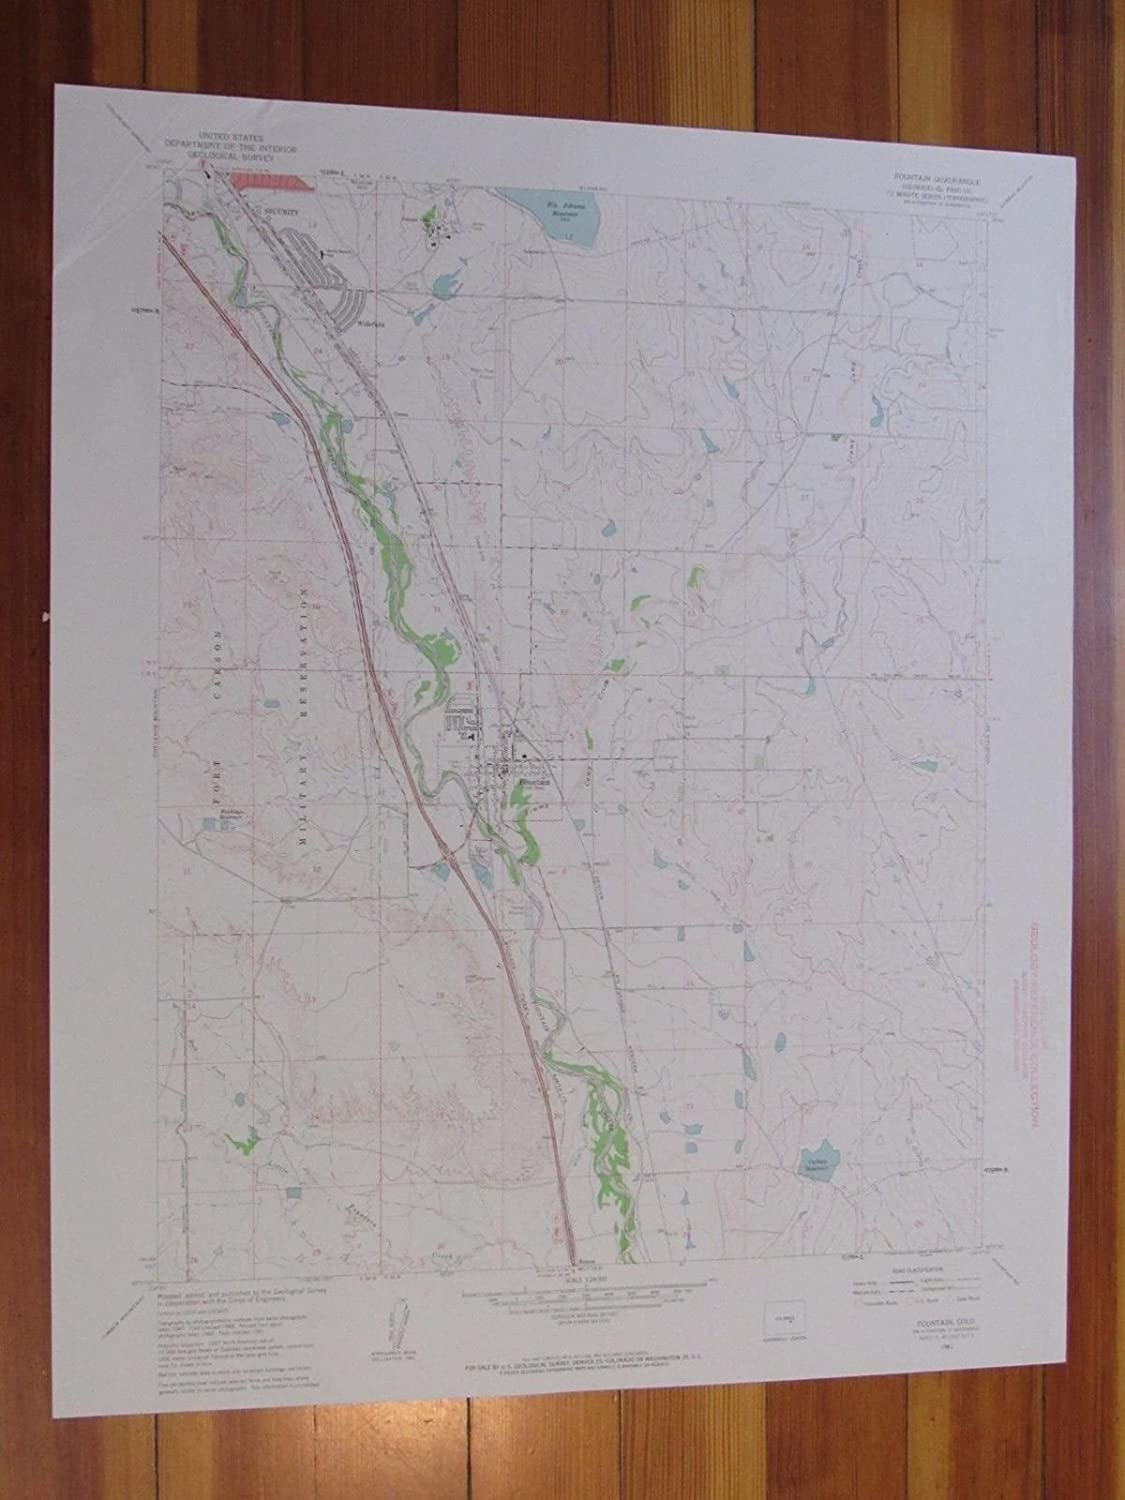 Amazon.com: Fountain Colorado 1963 Original Vintage USGS ... on